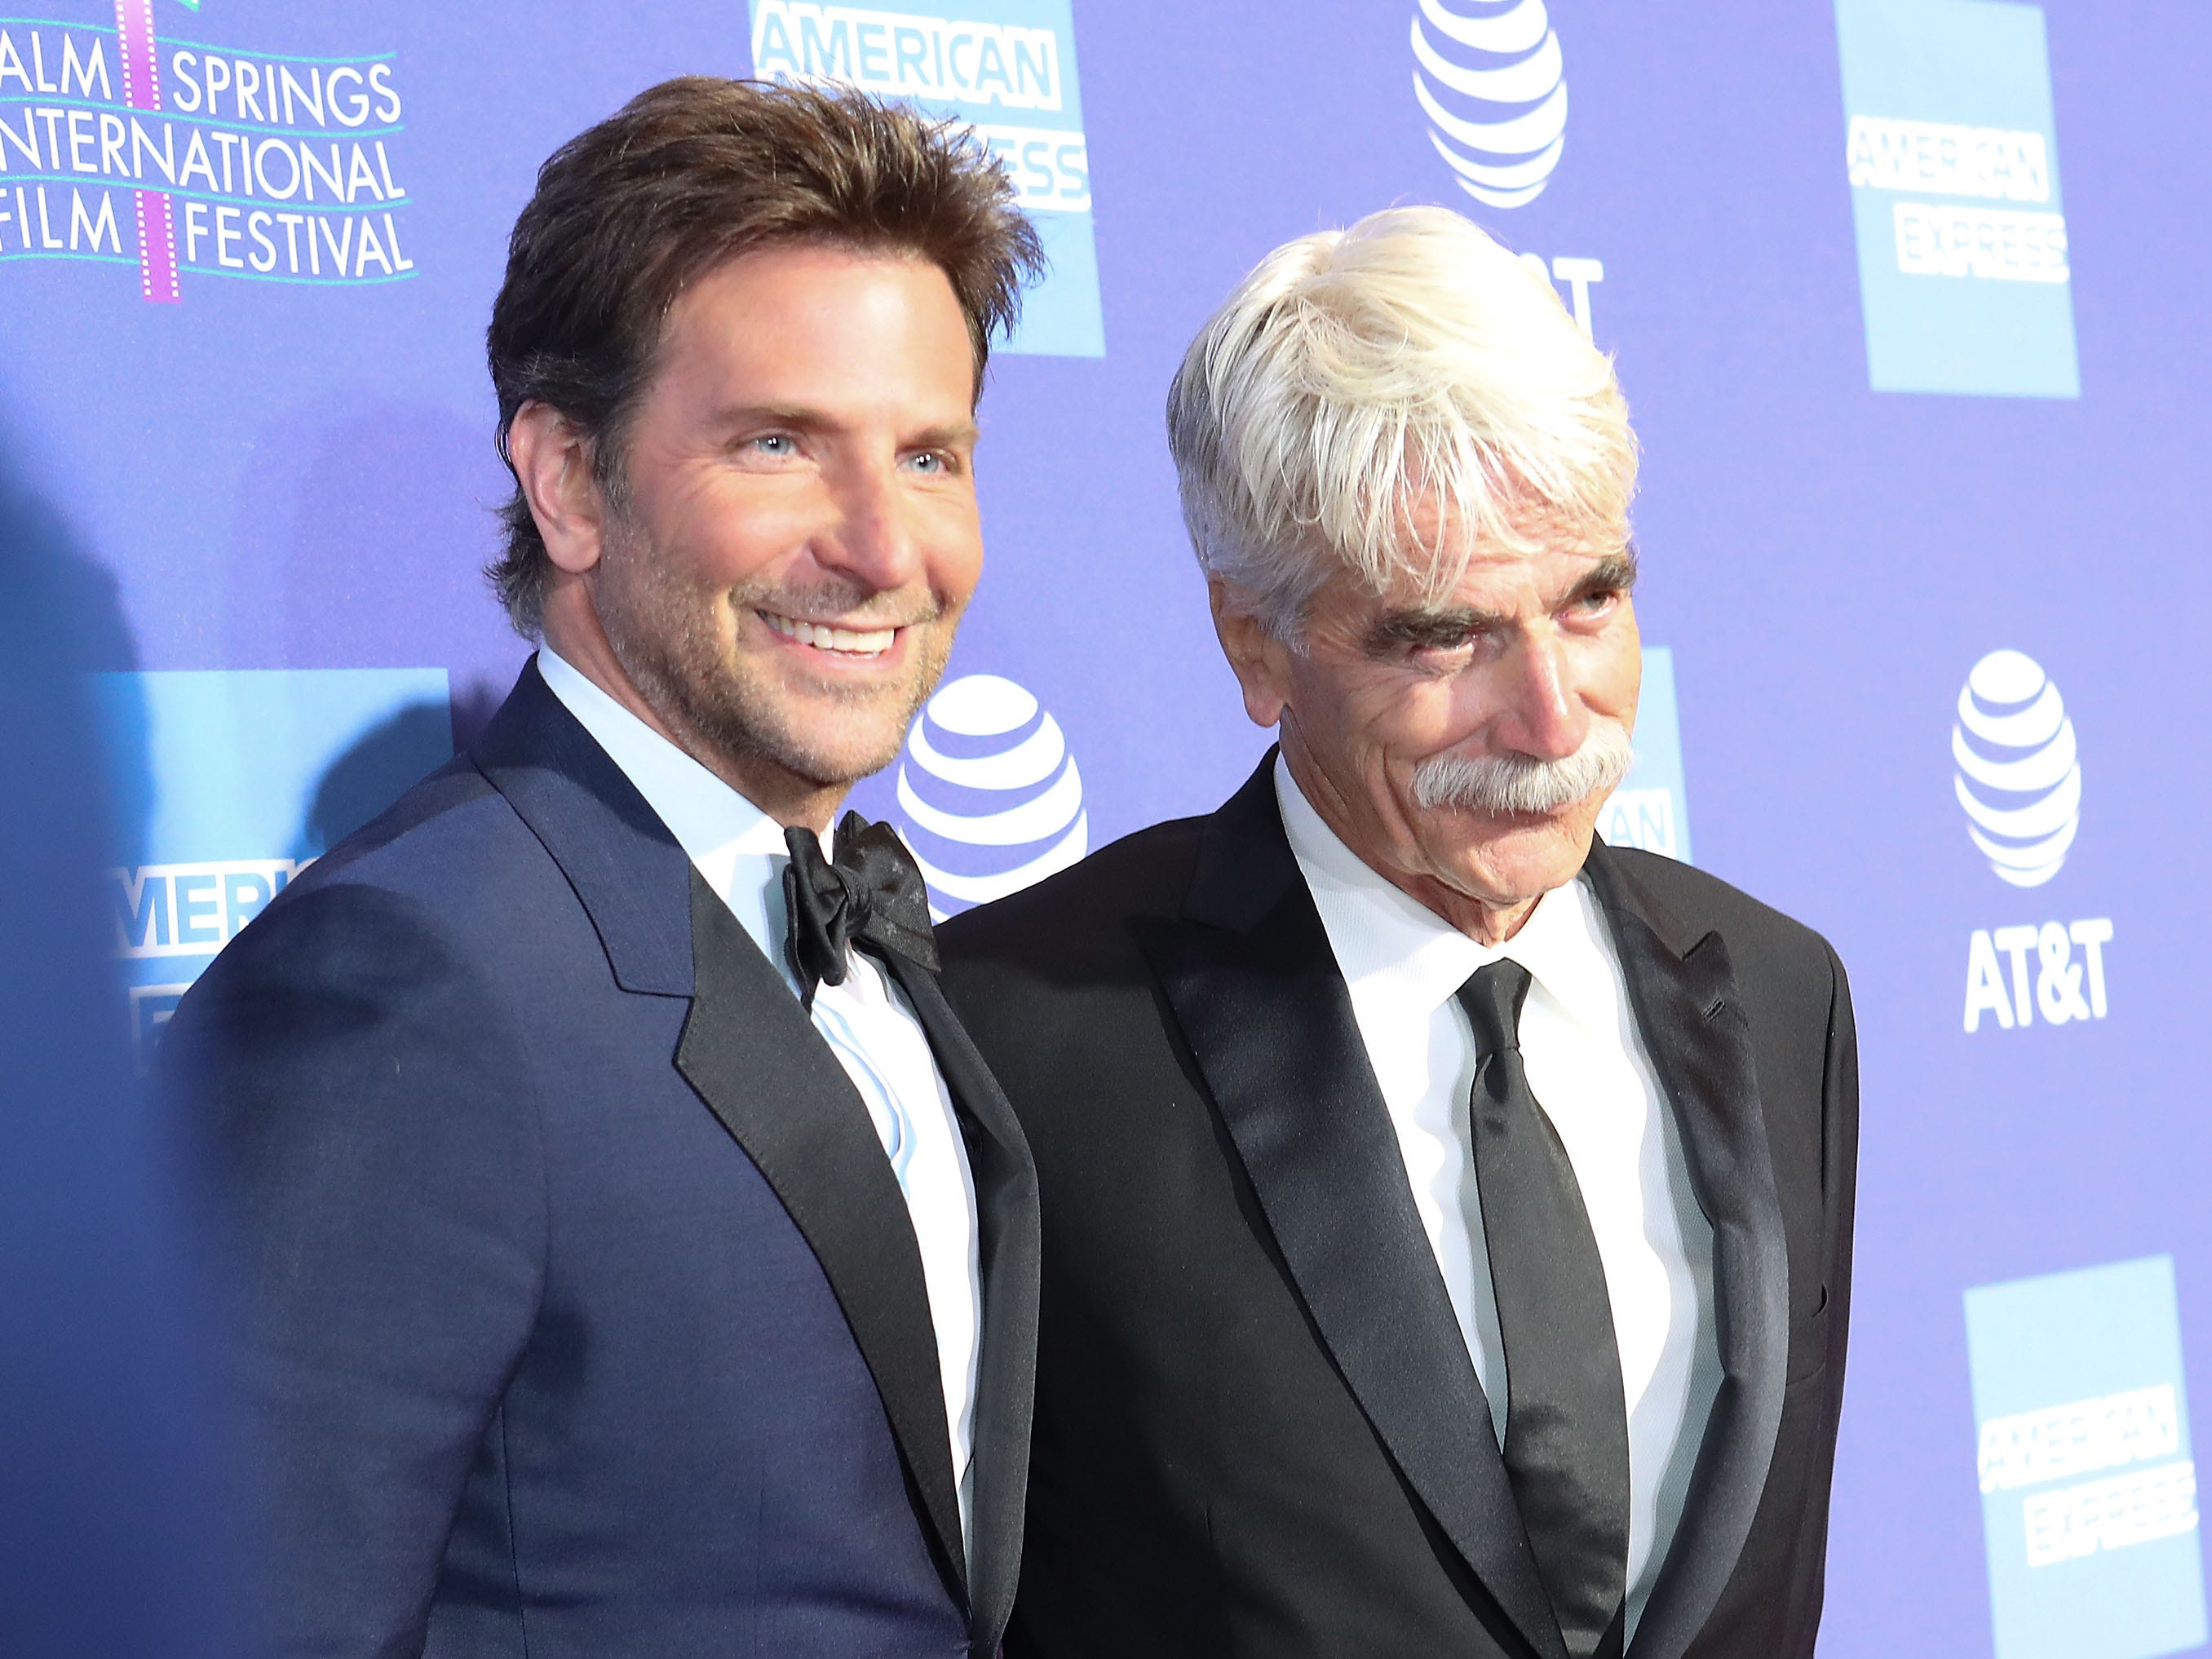 Bradley Cooper and Sam Elliott at the Palm Springs International Film Festival Awards Gala, January 3, 2019.